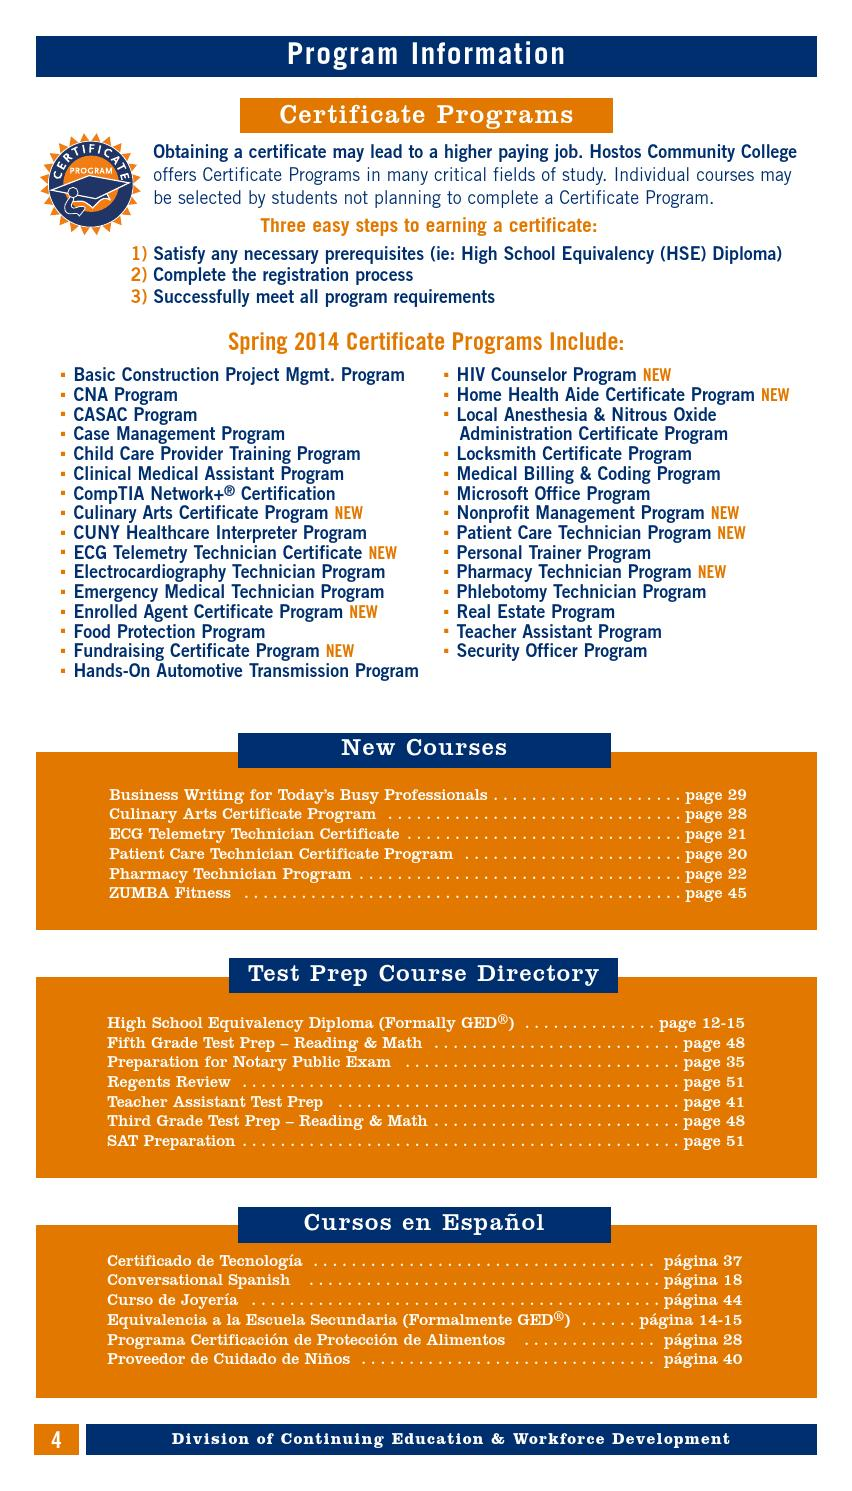 Spring 2014 Continuing Education Catalog By Hostos Community College